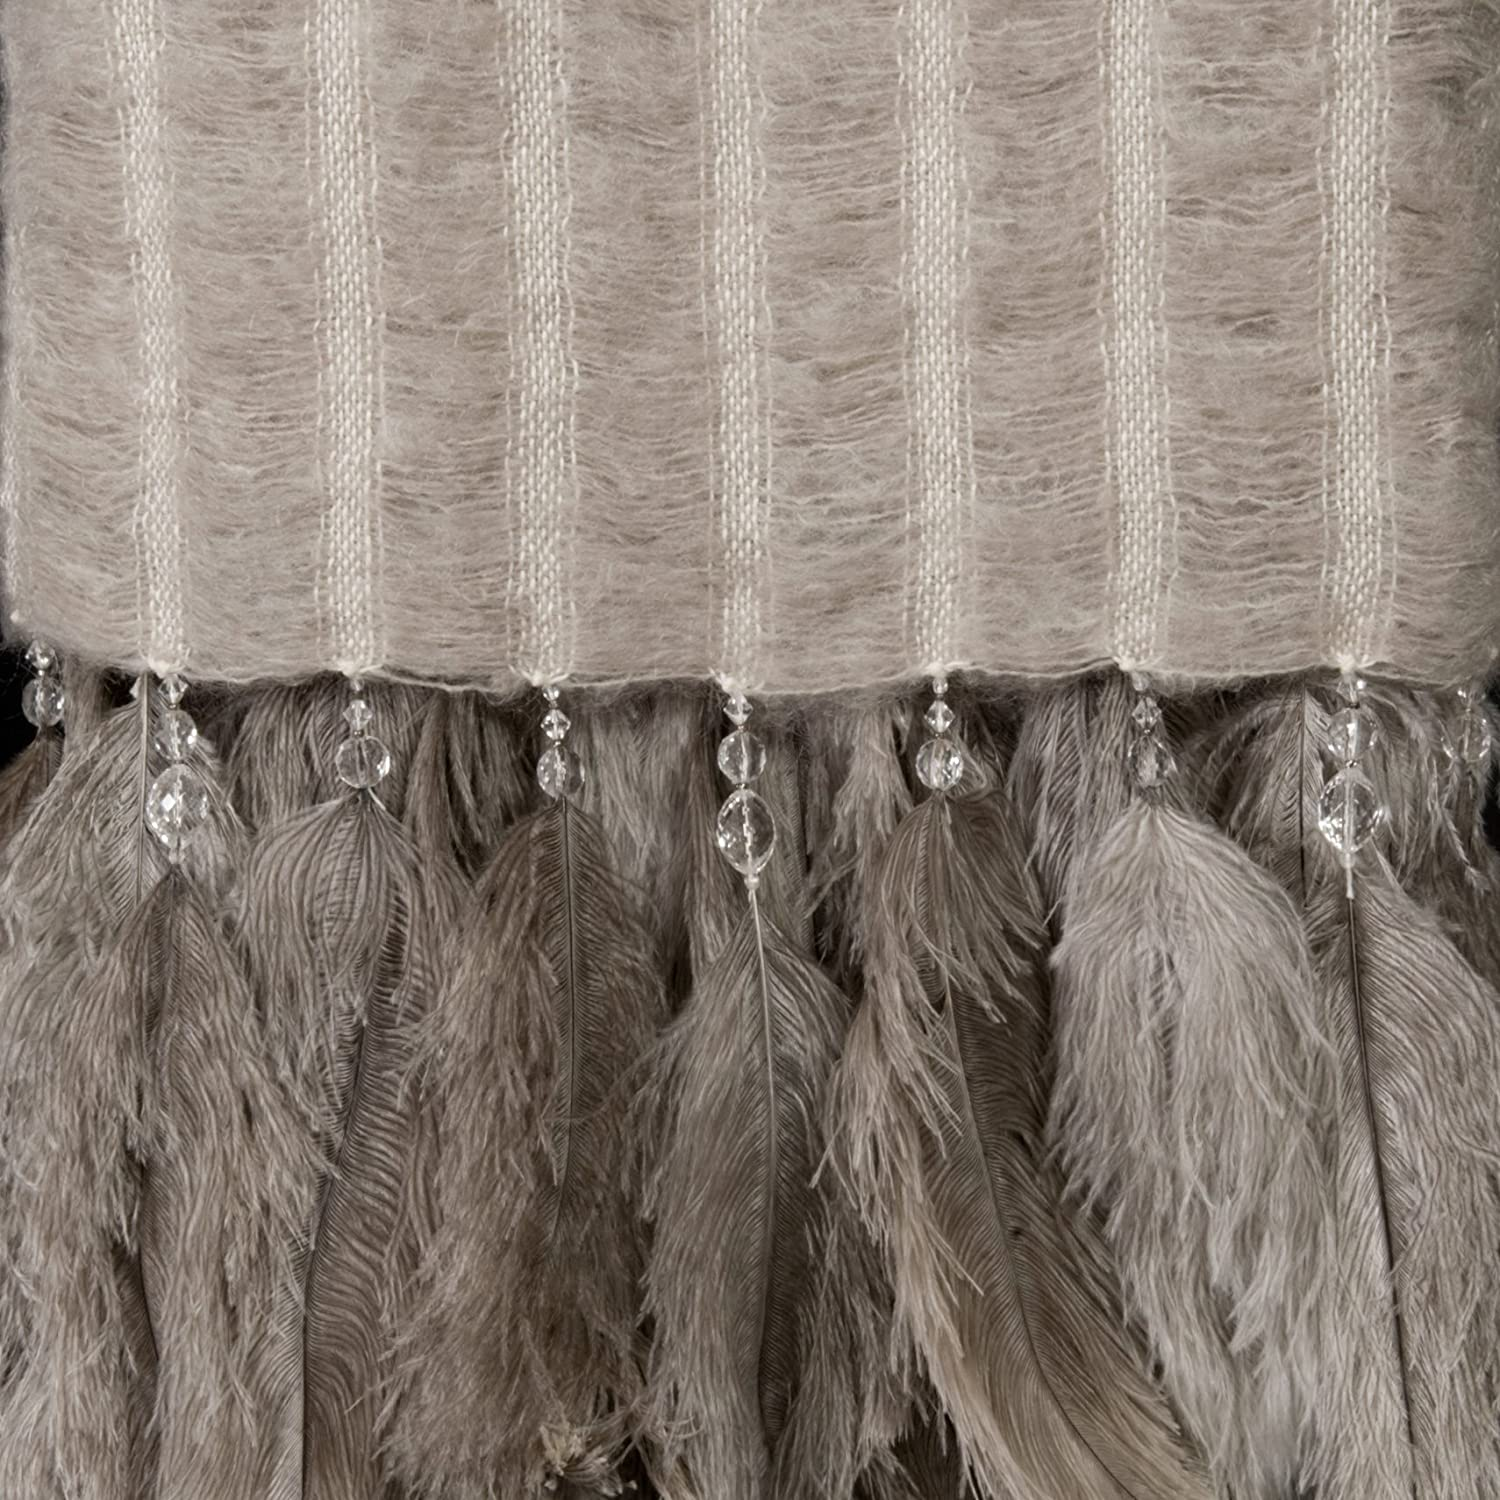 Abafazi Mohair and Ostrich Feather Throw (ライトストーン) B00BOFXLTM